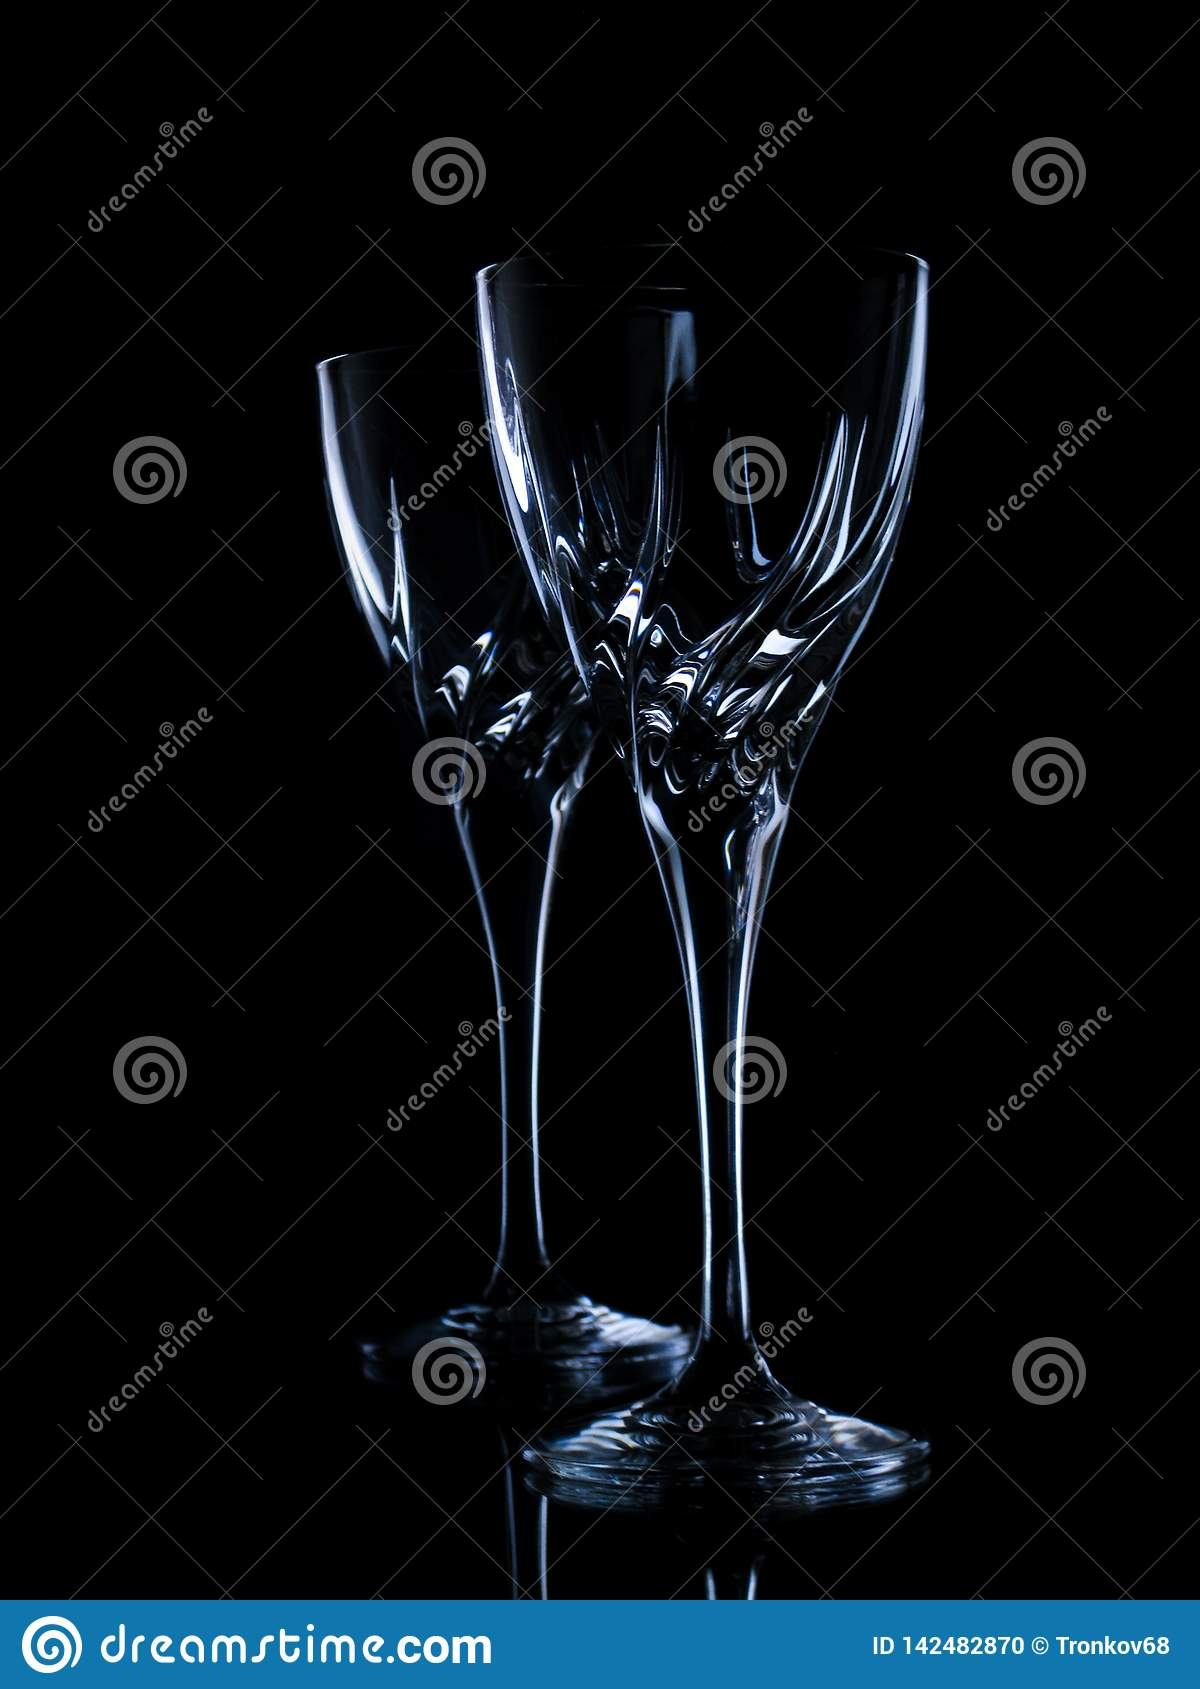 Two glasses for wine on a black background